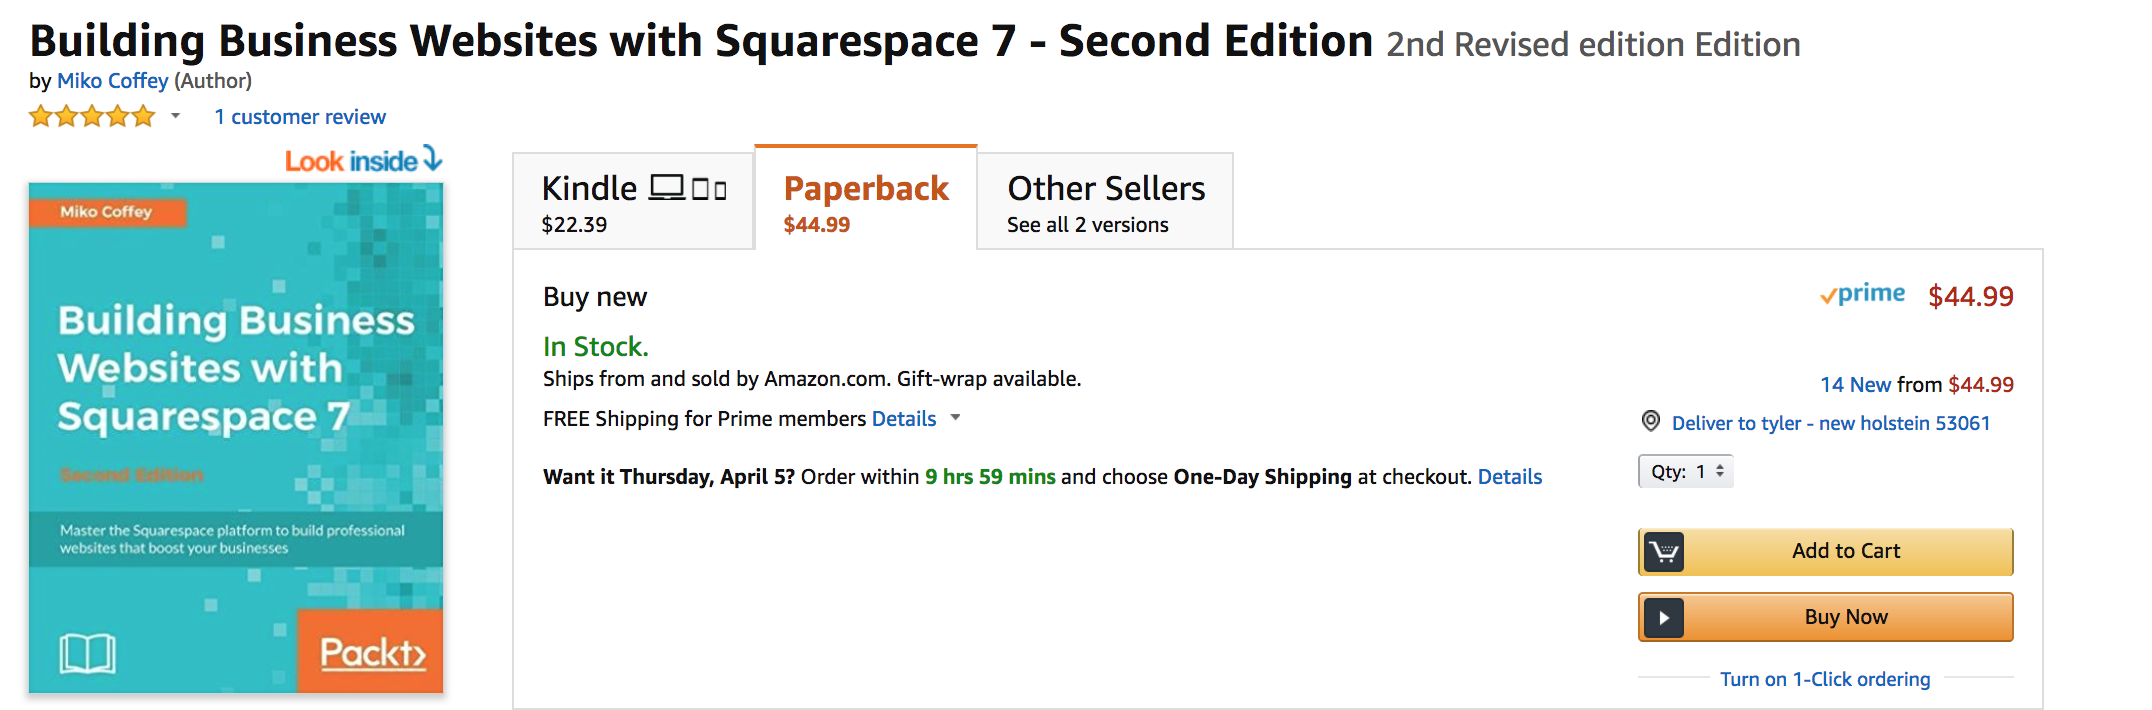 Building Business Websites with Squarespace 7 Book